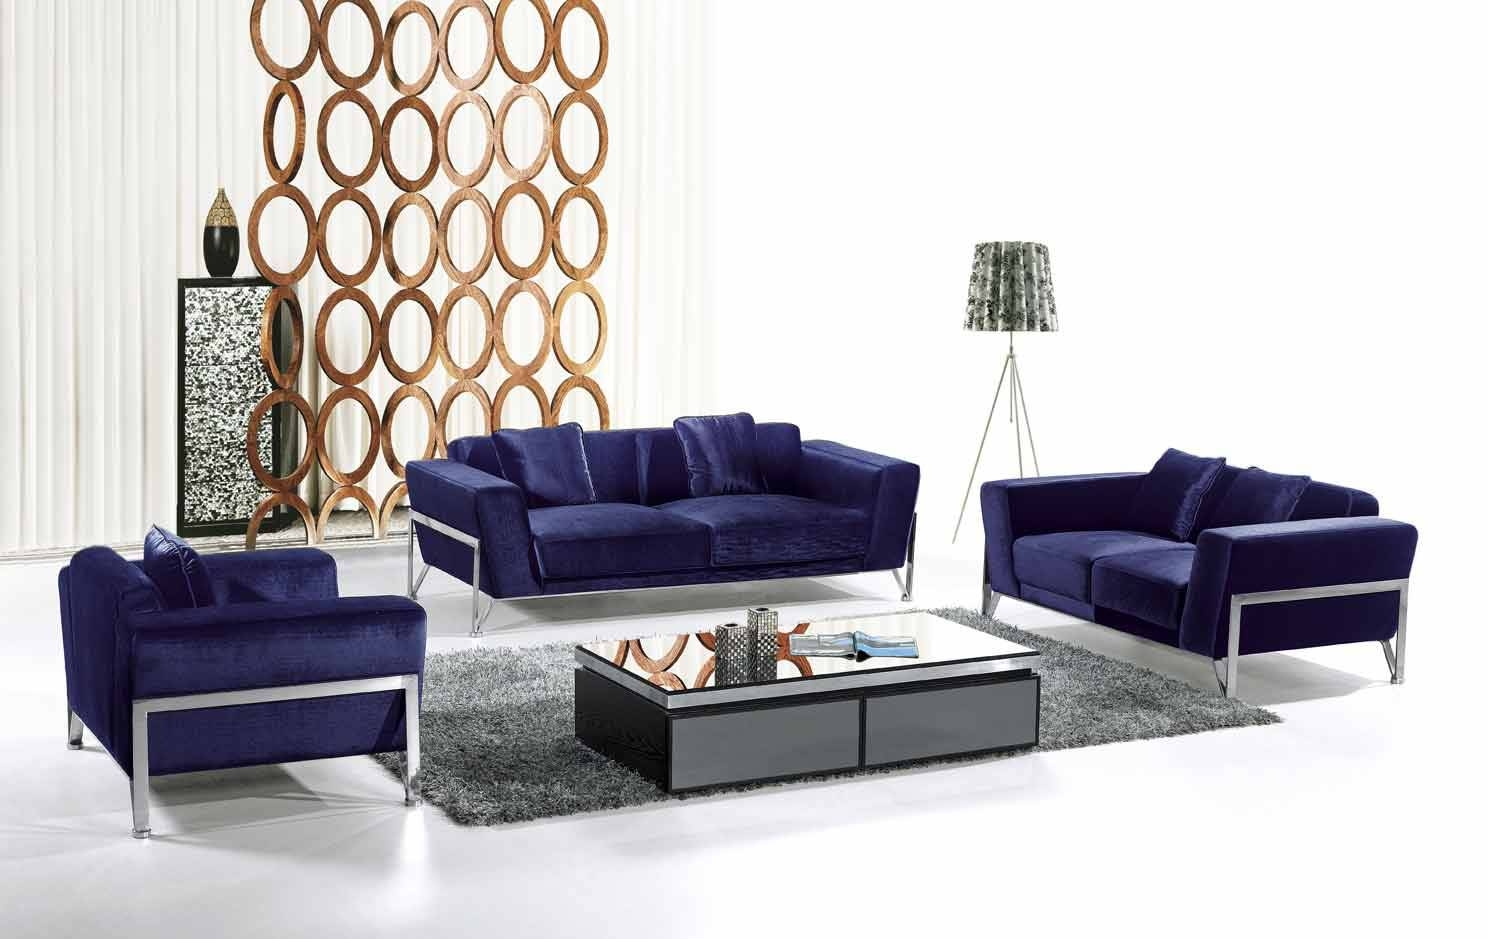 Modern Living Room Furniture Ideas Inside Inspiration Decorating with Living Room Sofa Chairs (Image 12 of 15)